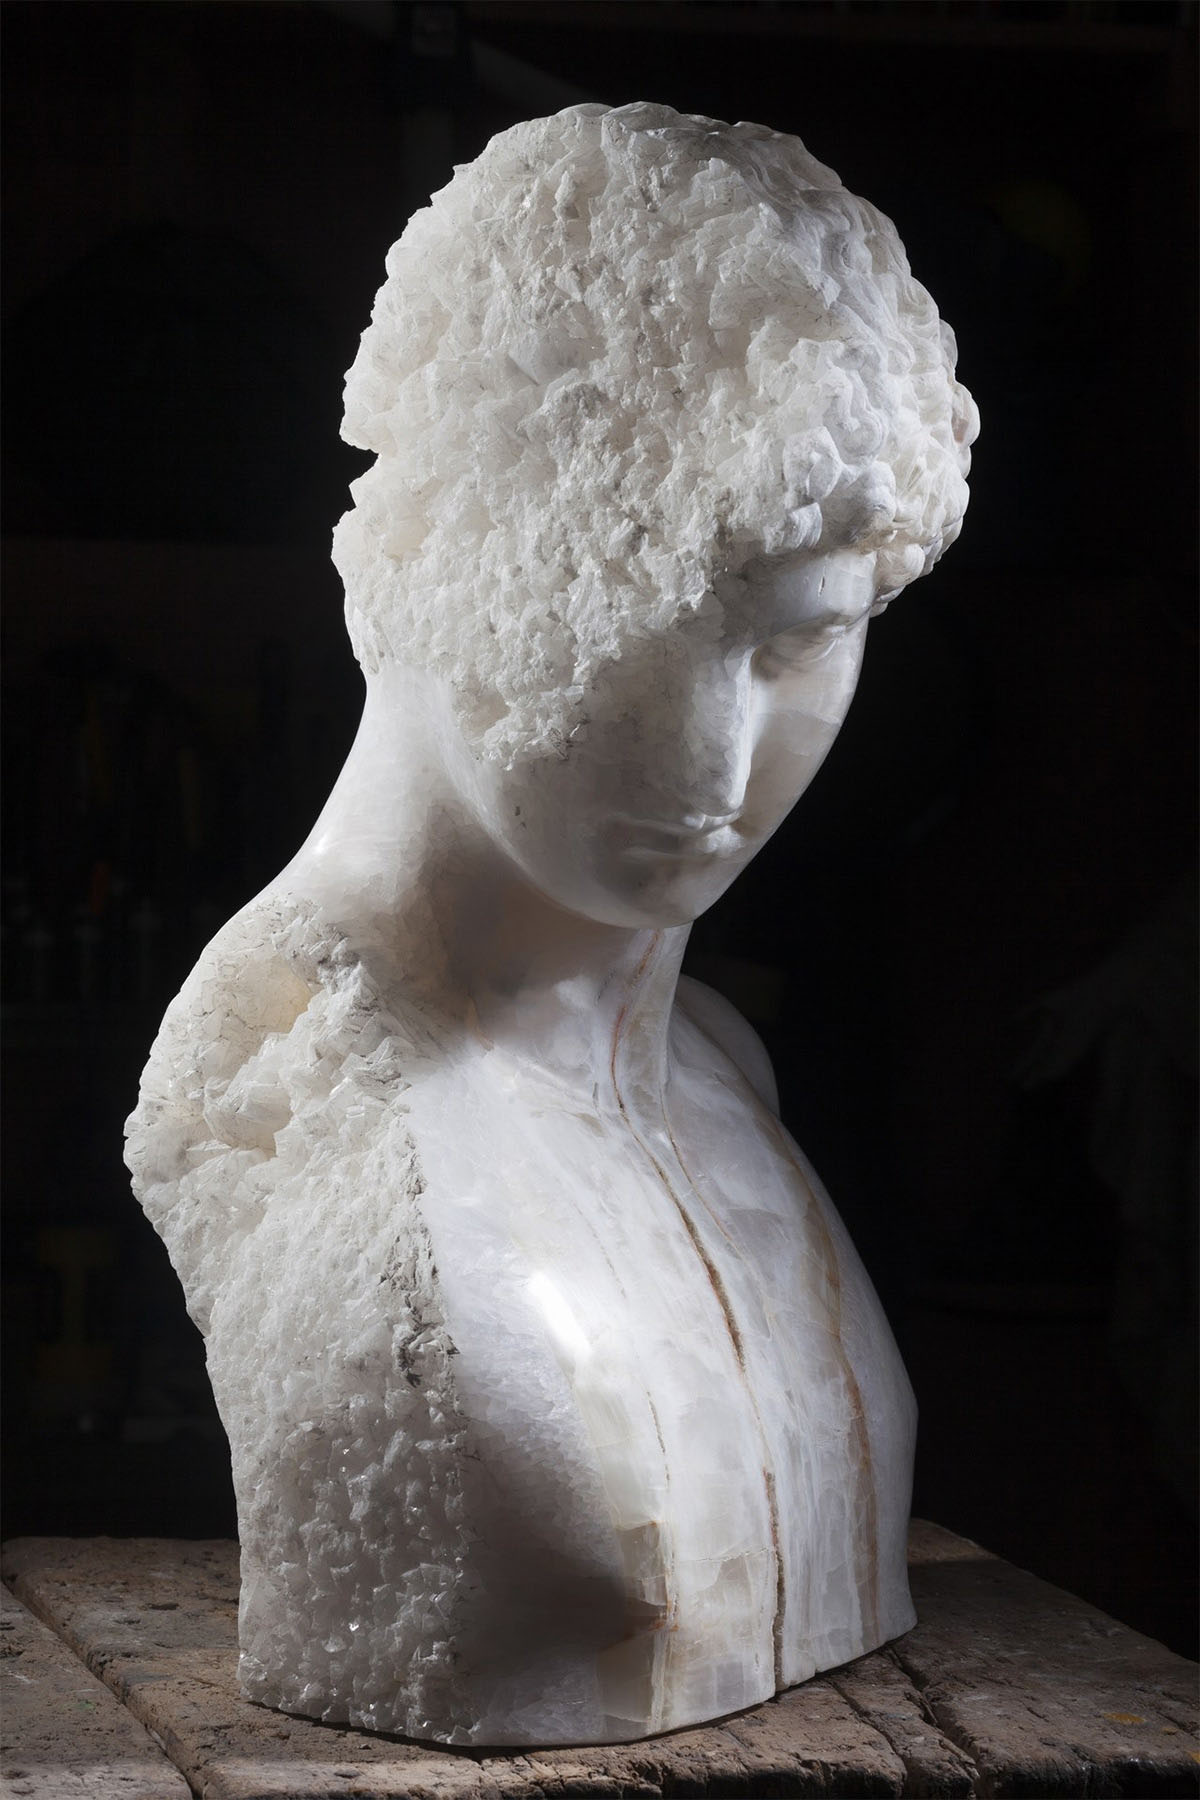 iGNANT_Art_Massimilianio_Pelletti_Ancient_Sculptures_8